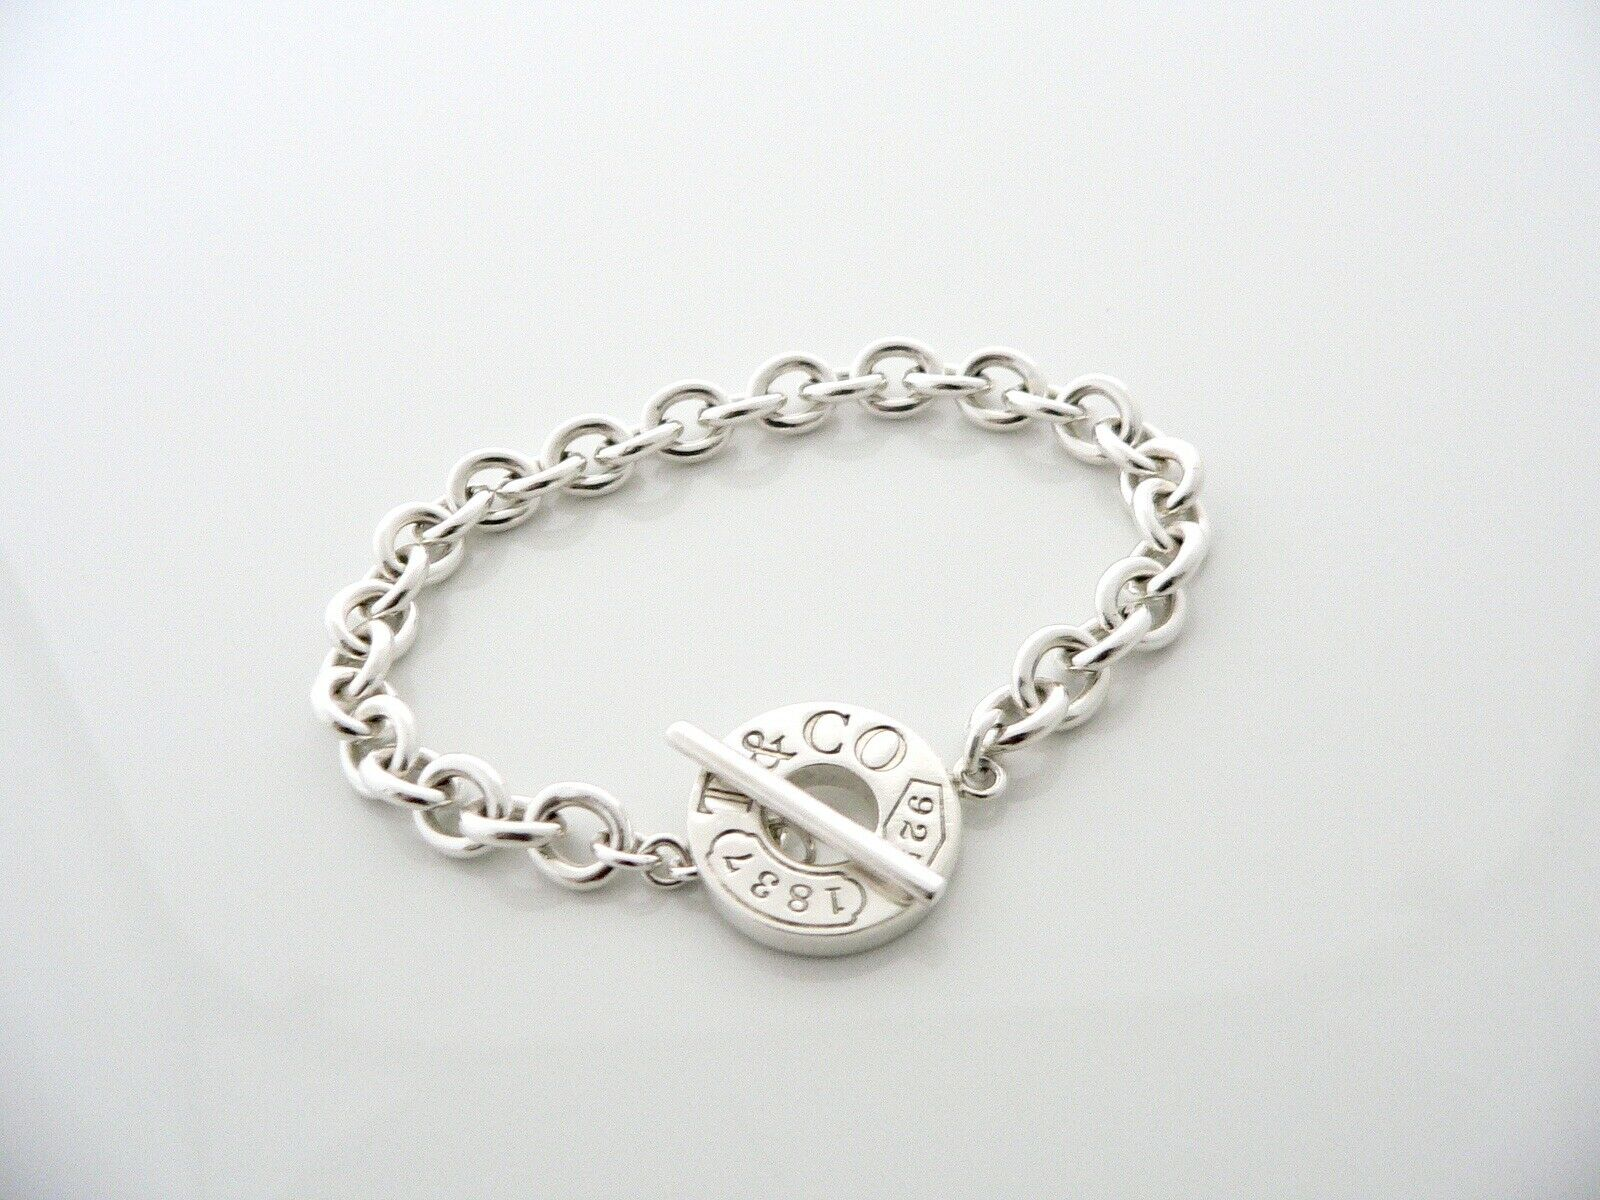 Tiffany & Co Silver 1837 Toggle Bracelet Bangle Chain Gift Love 8 Inch Longer